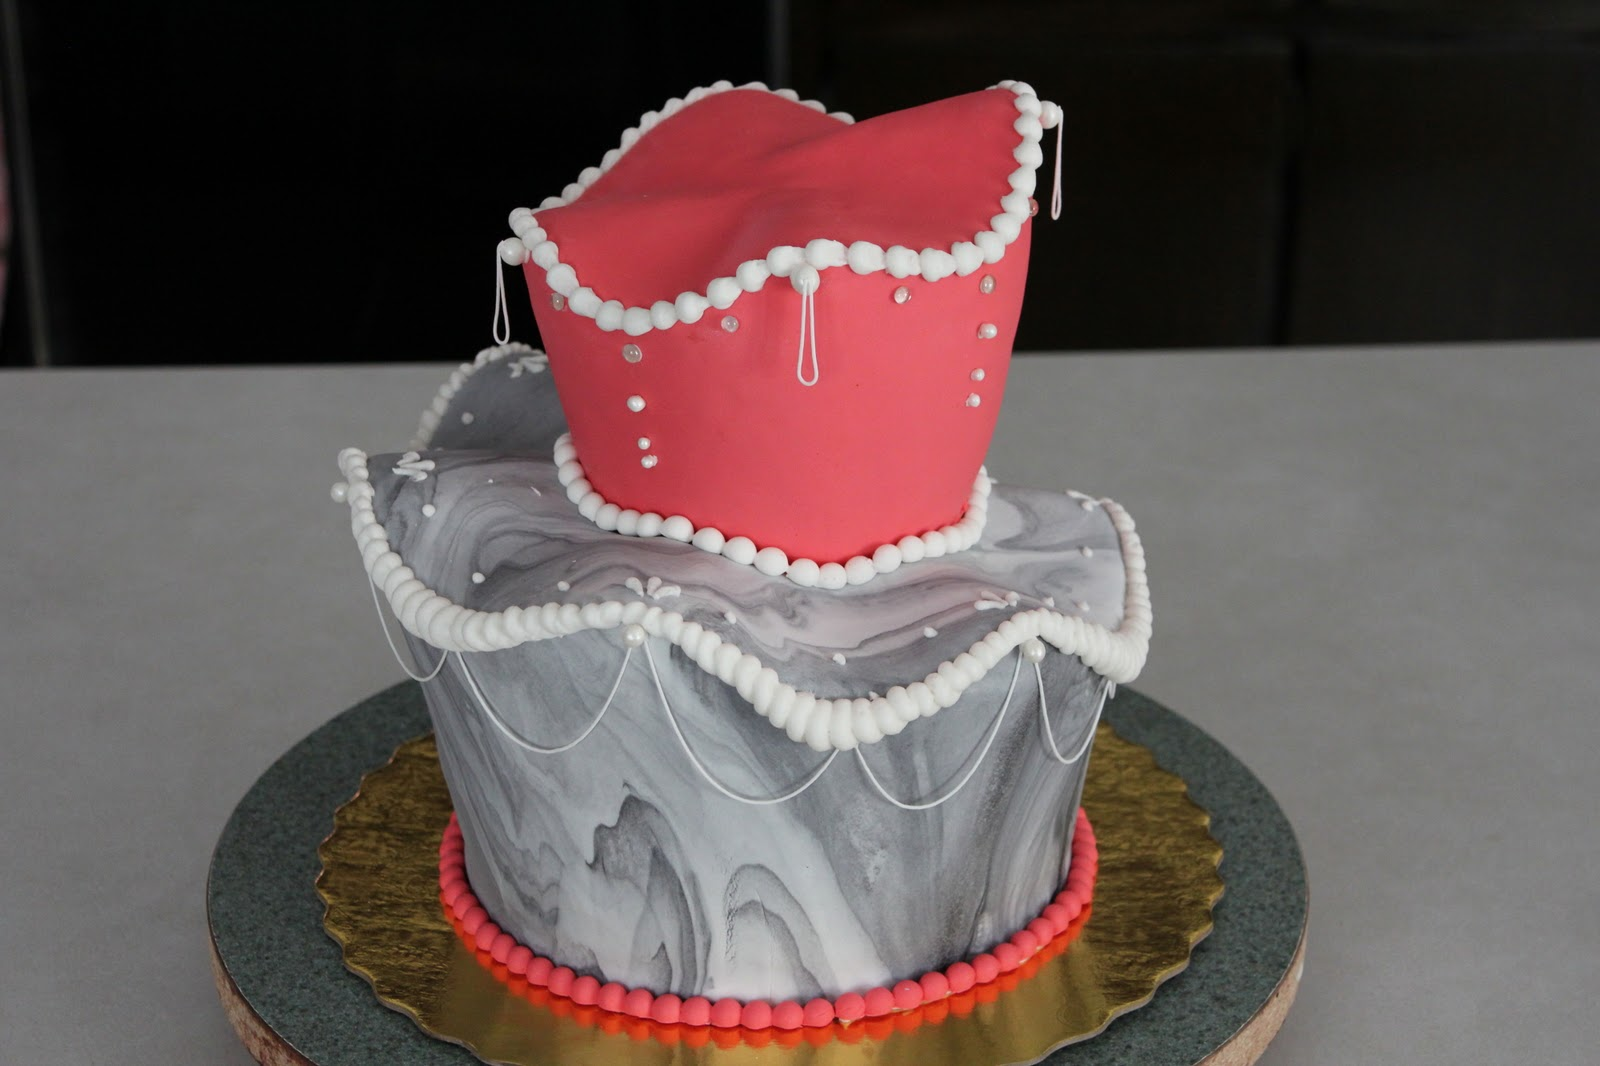 How To Make A Topsy Turvy Cake Without Fondant